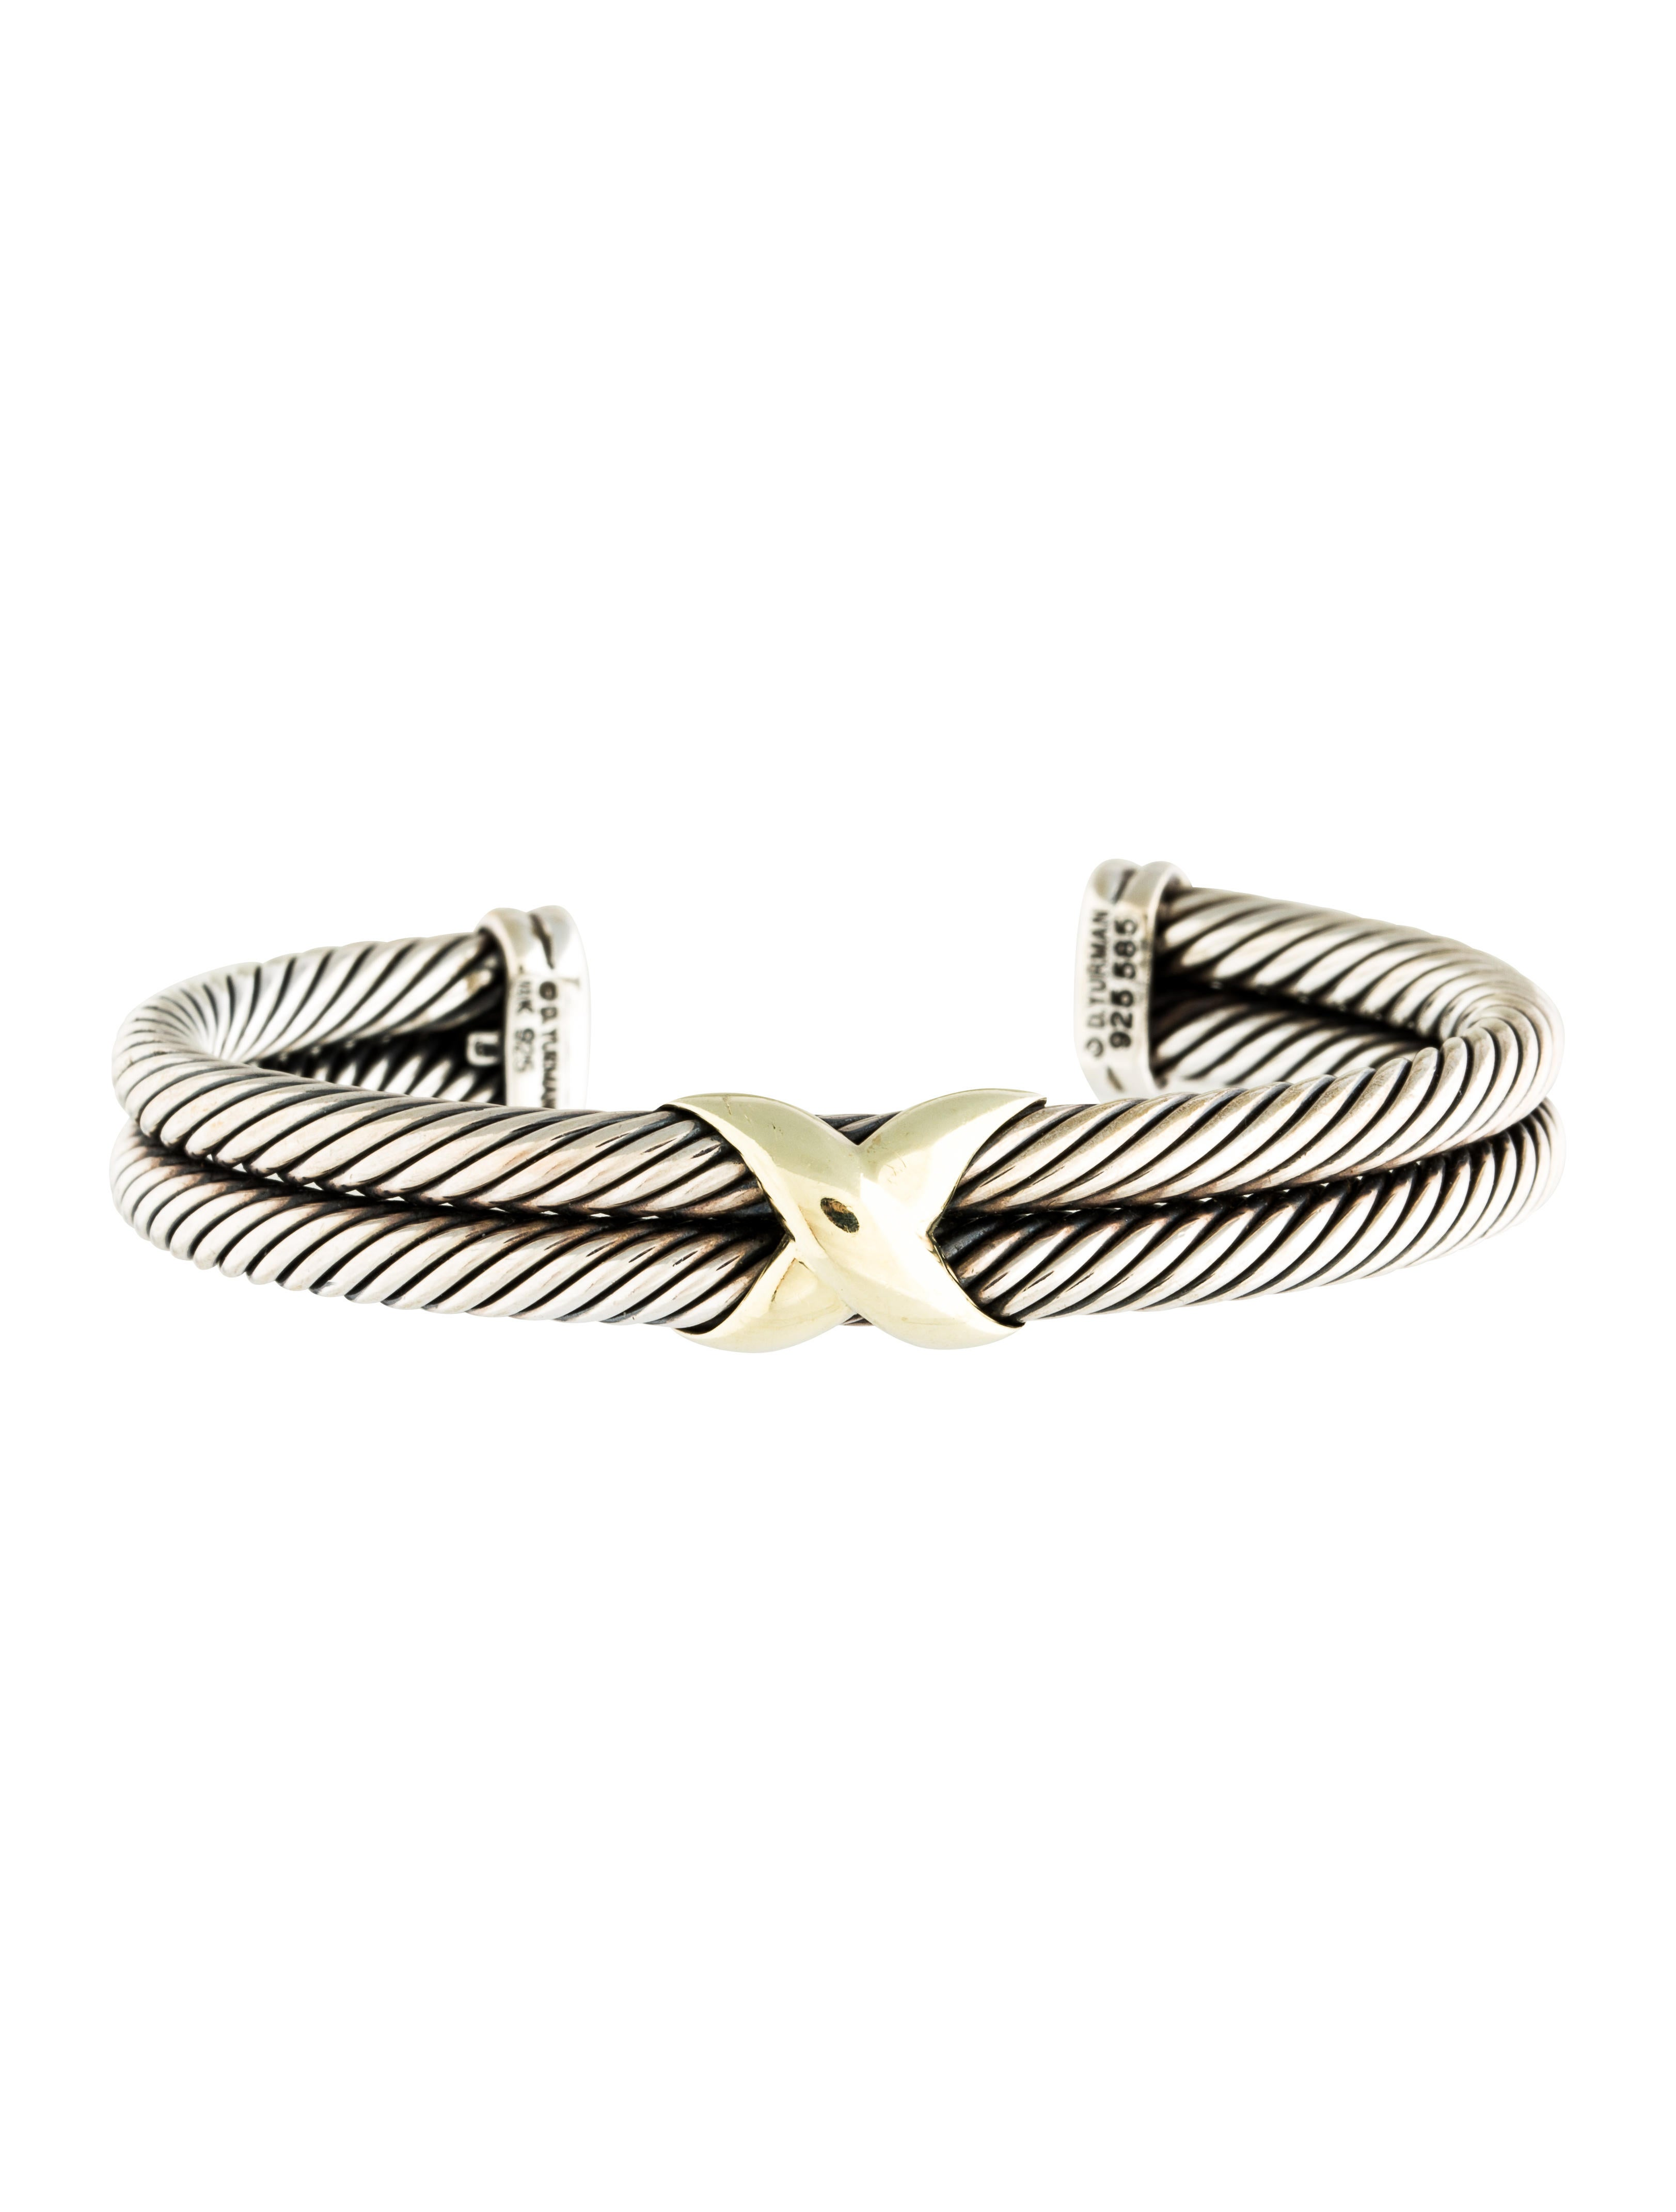 David yurman x double cable cuff bracelet bracelets for David yurman inspired bracelet cable